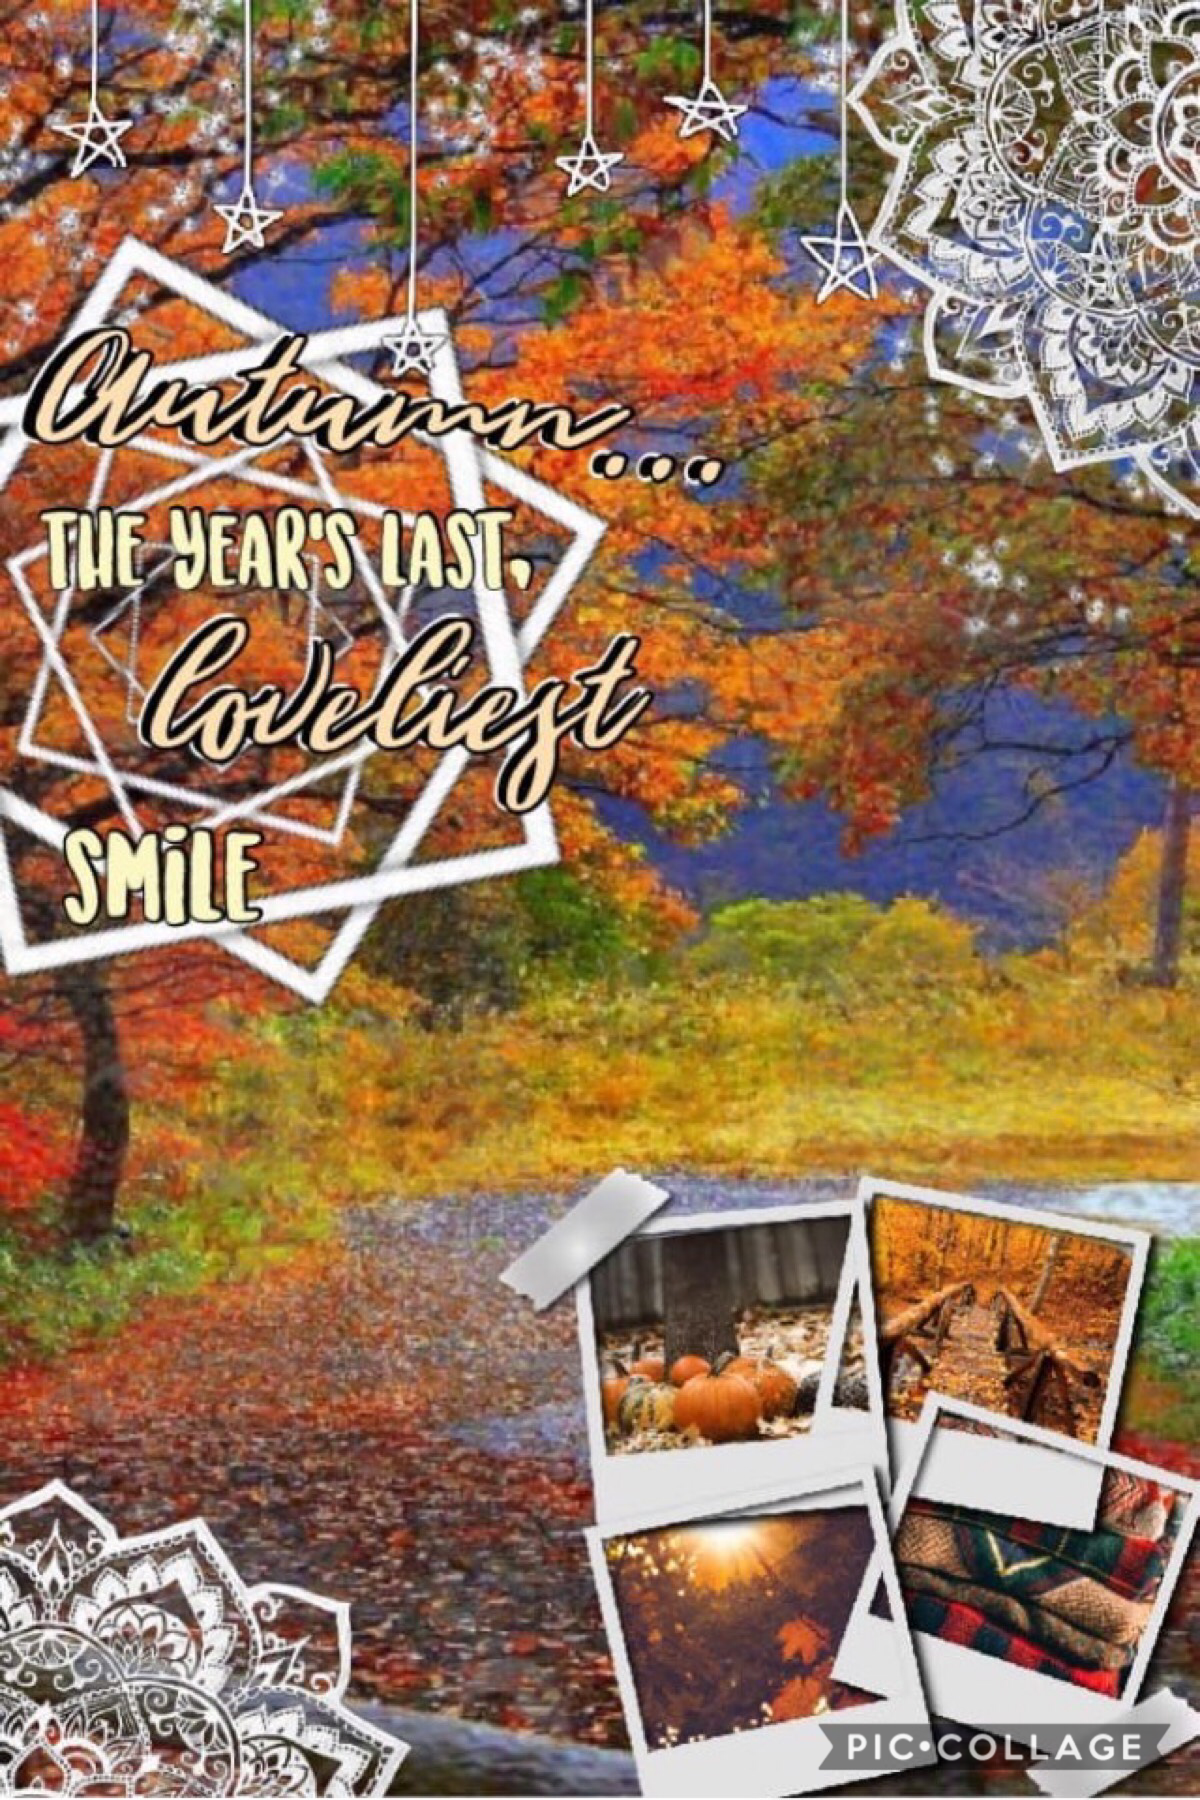 Collab with DeepDreamers! 🍂🍁I did text, she did background, and we both did pngs!😊Please go follow this amazing user! She's soo nice, organized, and talented! I love fall! QOTD:fave fall scent AOTD:apple cider or cinnamon sweet pumpkin 🎃